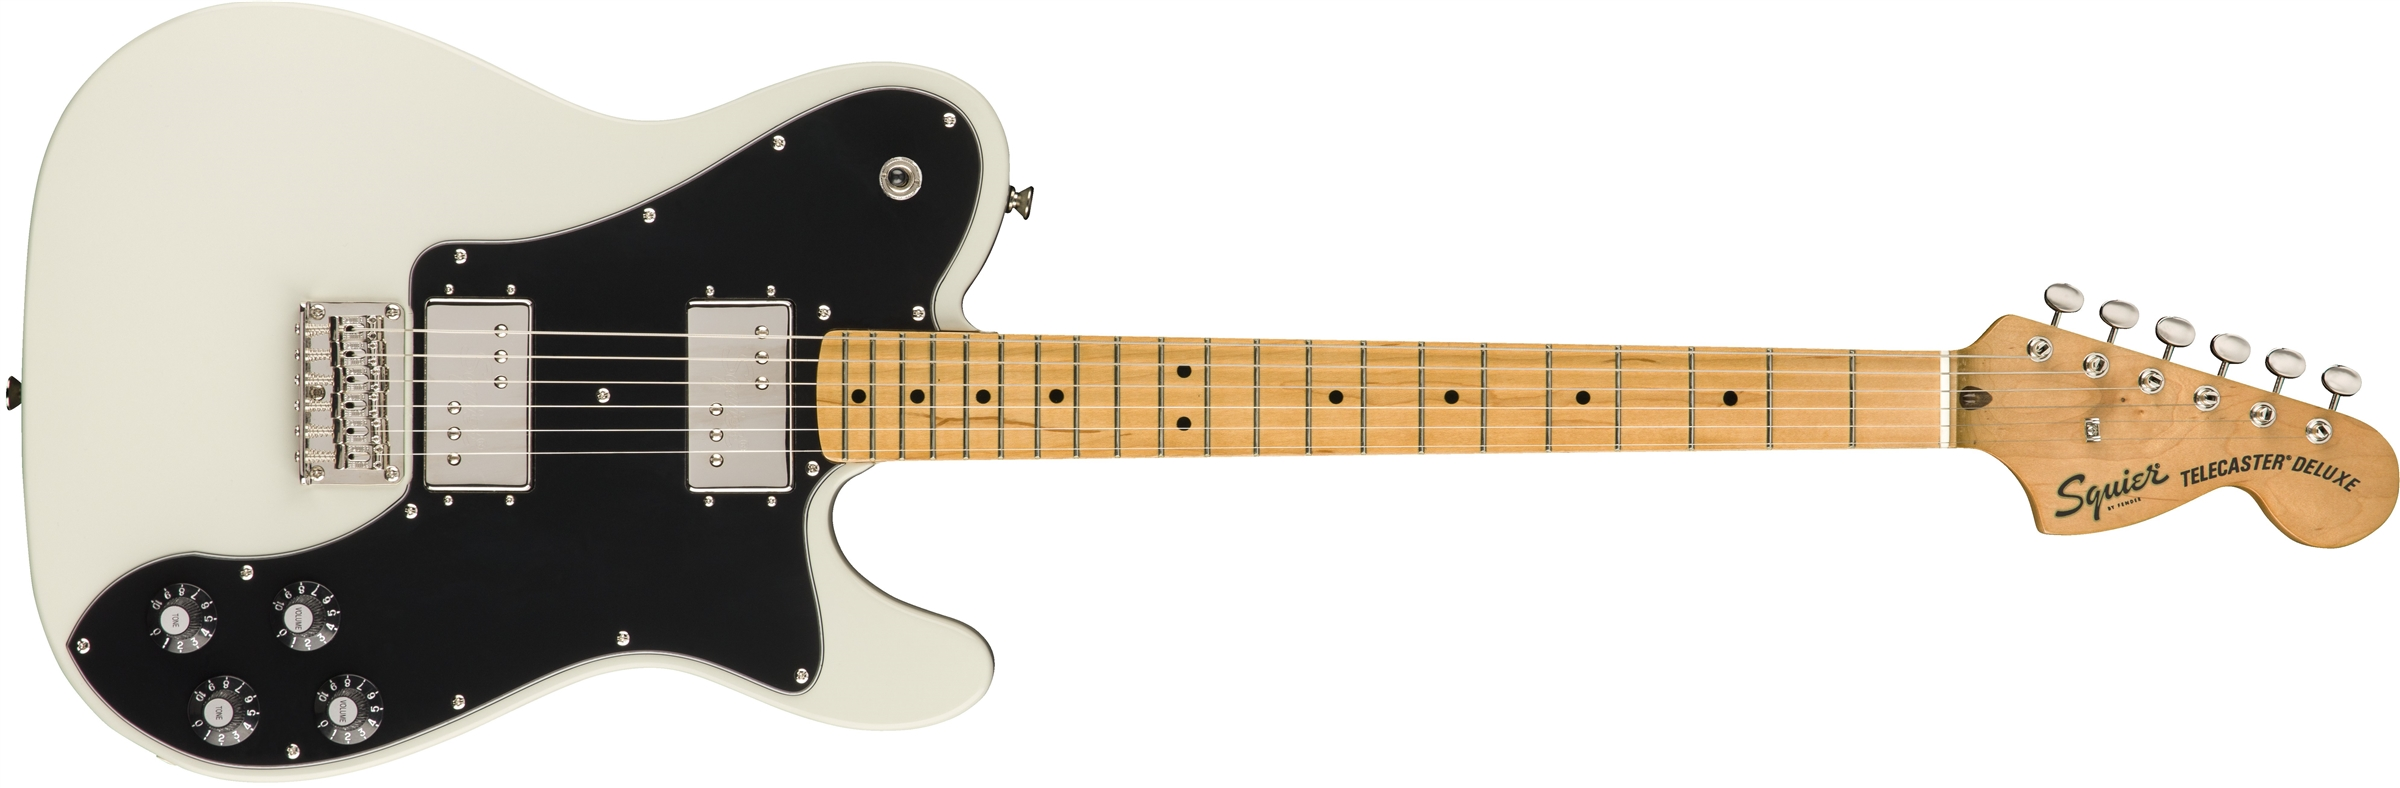 SQUIER-Classic-Vibe-70-Telecaster-Deluxe-MN-Olympic-White-0374060505-sku-23477